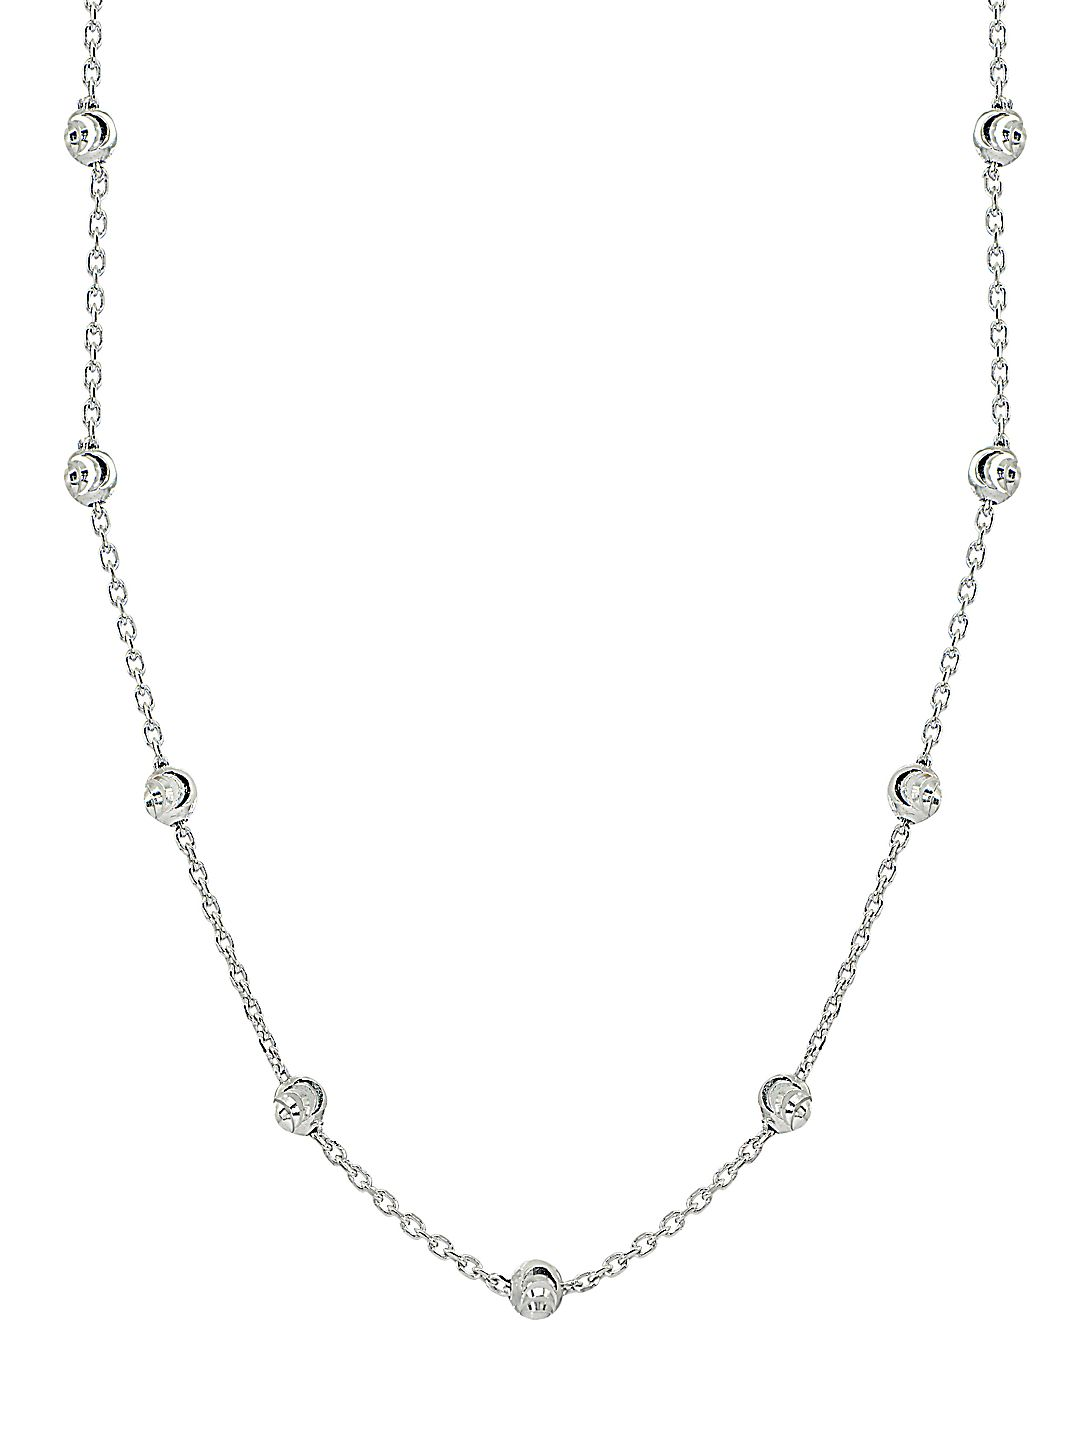 Sterling Silver Beaded Station Necklace